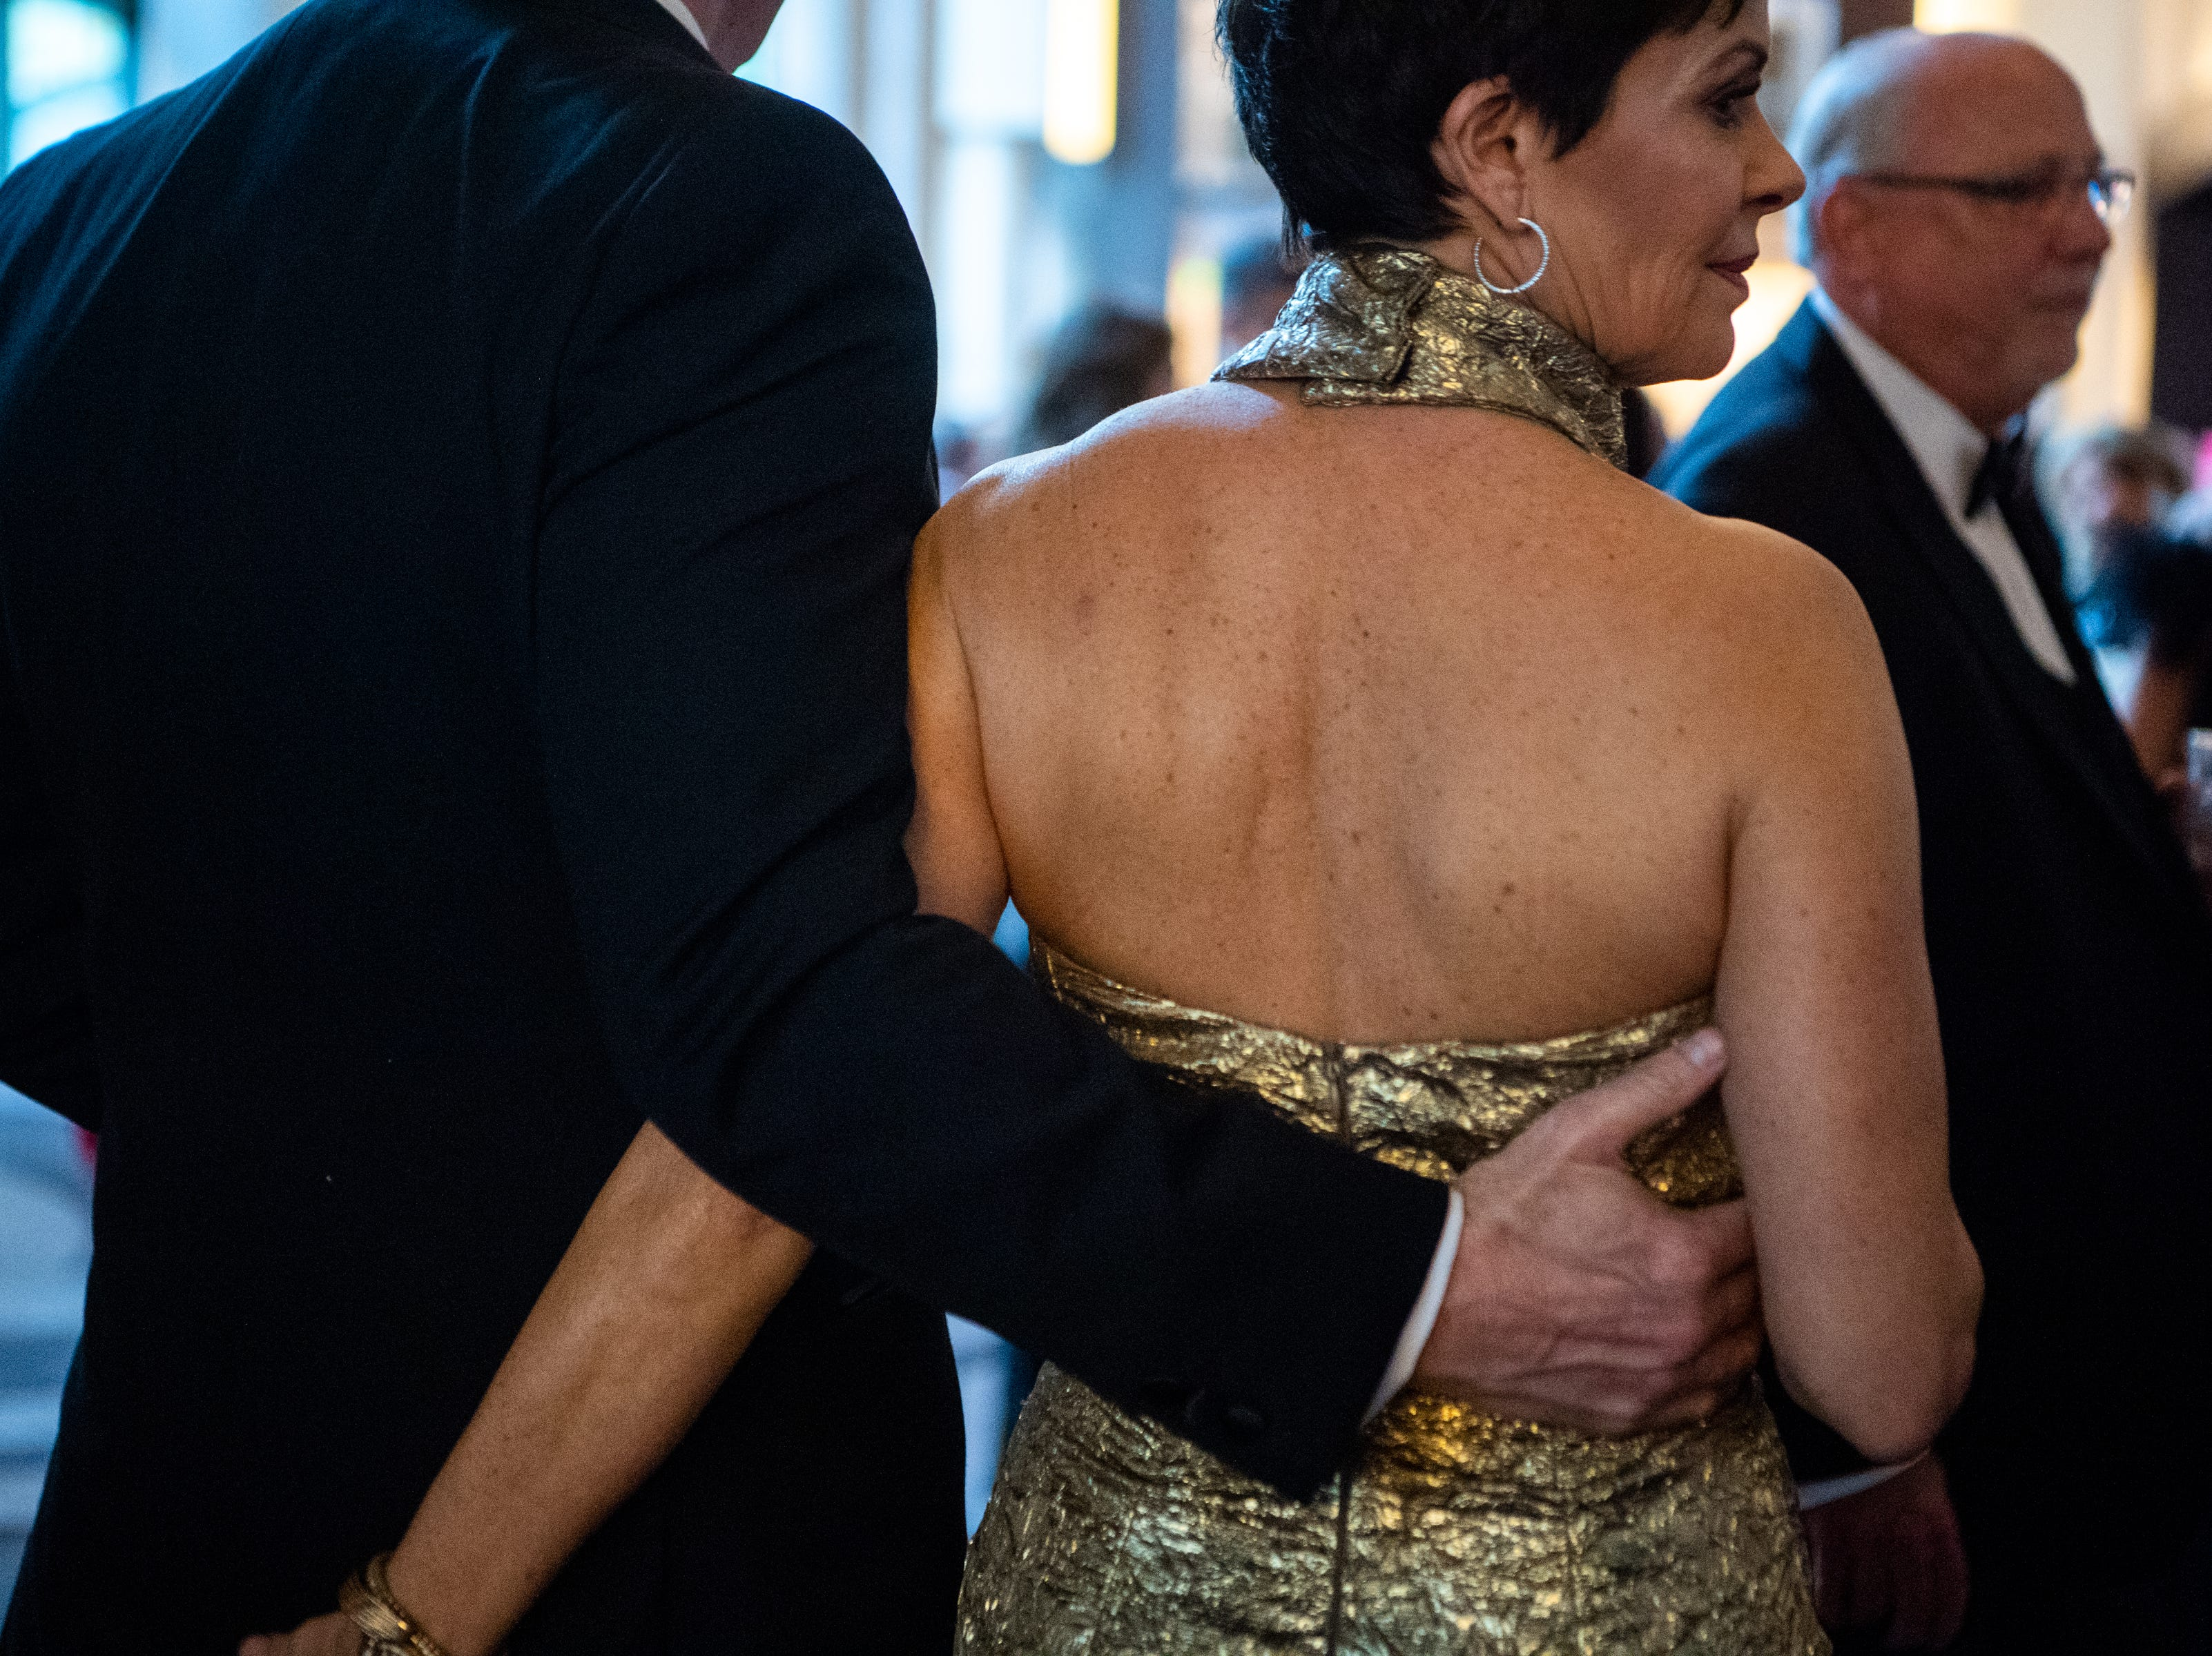 People walk arm and arm to Austin Peay State University's annual Candlelight Ball at the Omni Nashville Hotel Saturday, March 16, 2019, in Nashville, Tenn.